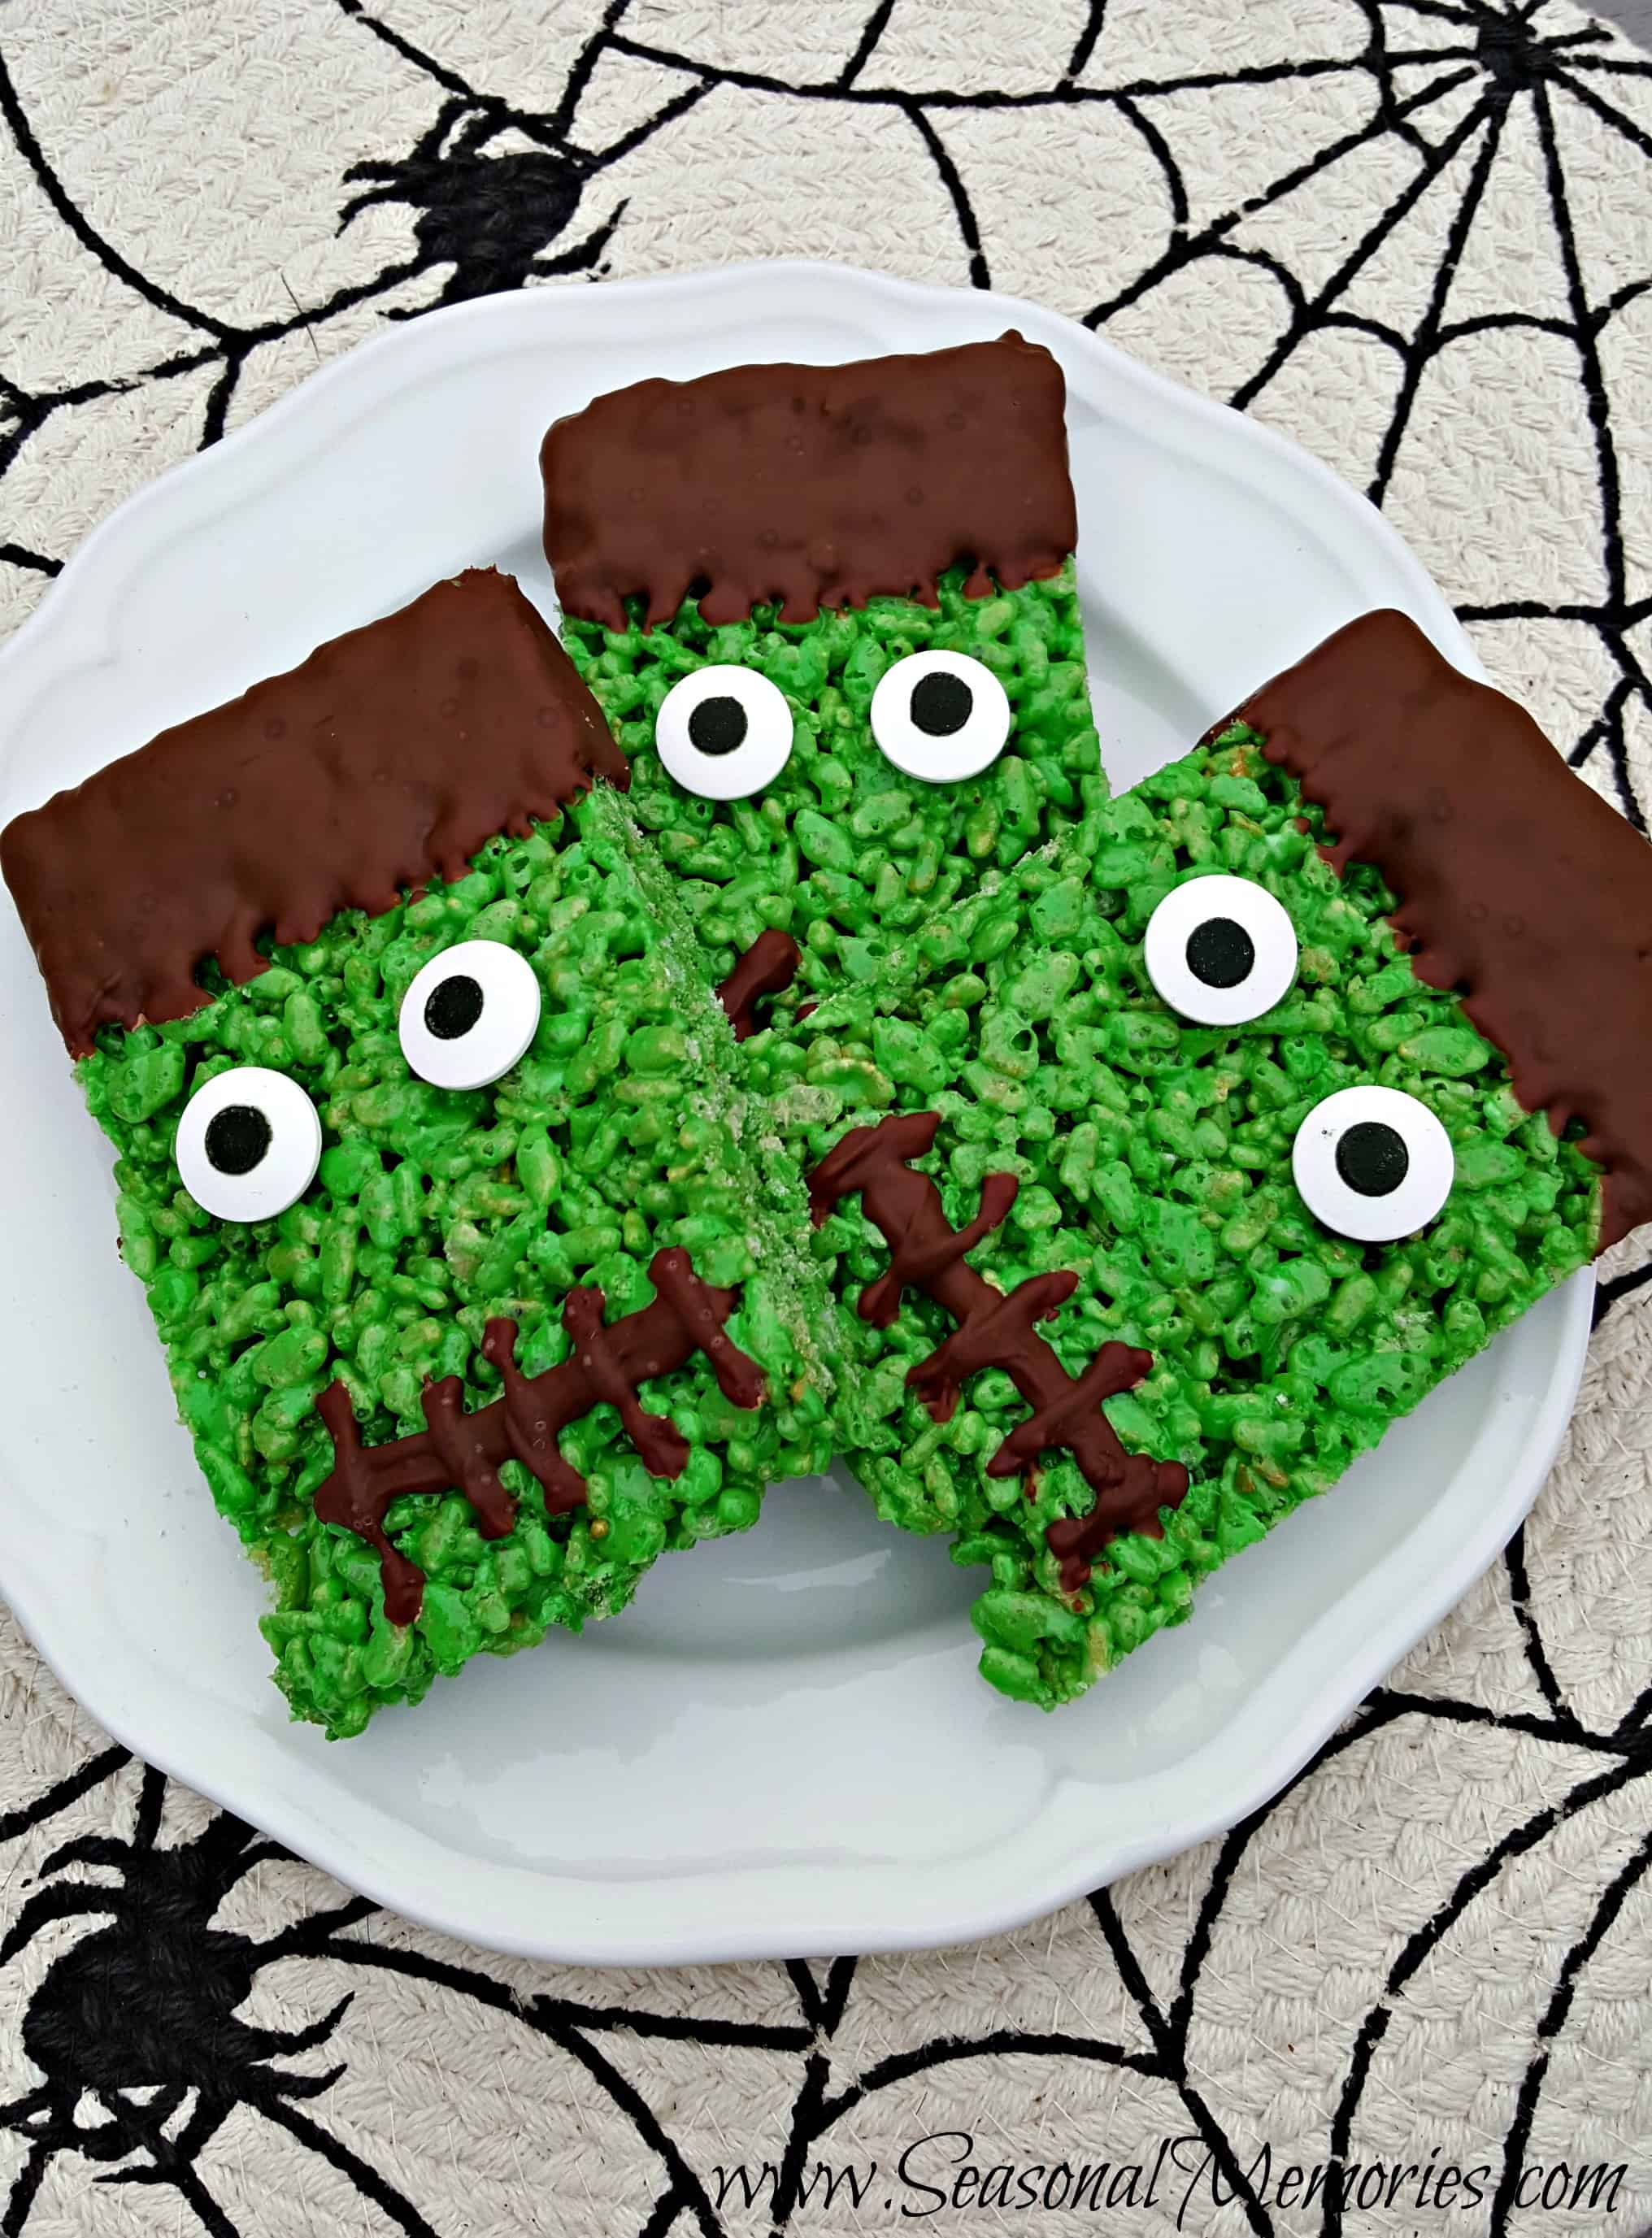 Frankenstein's Krispy Treats